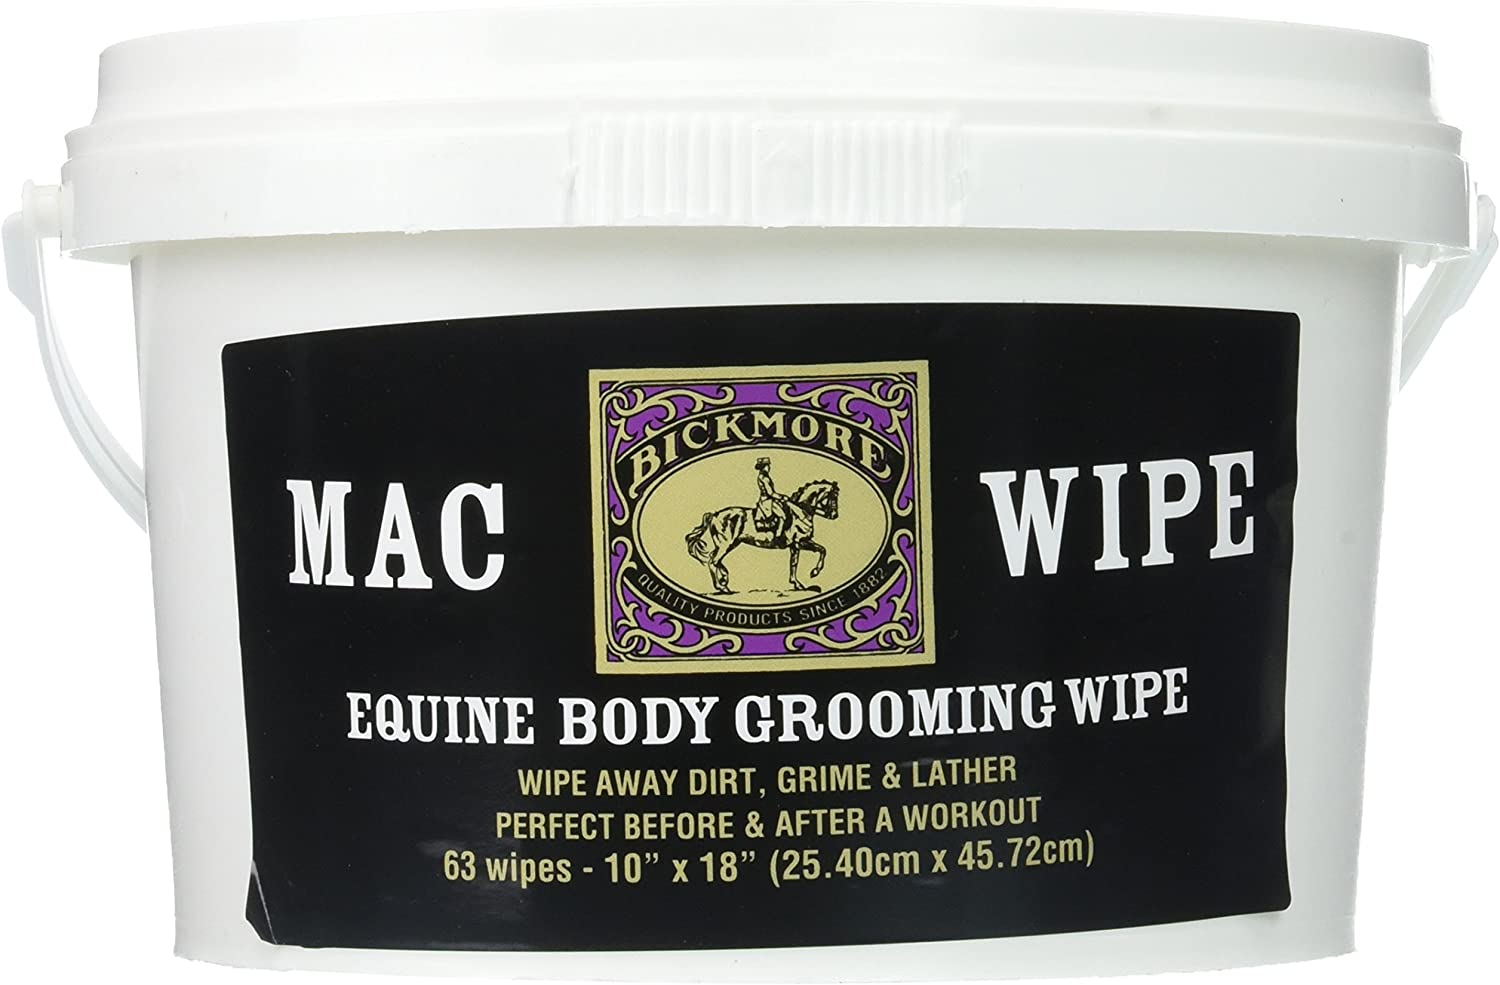 Bickmore Mac Wipes, 63 Count - Equine Body Grooming and Cleaning Wipe For Horses and Other Non-Self Grooming Animals - Ideal For Quick Cleanings Between Workouts Or Just Before Competition